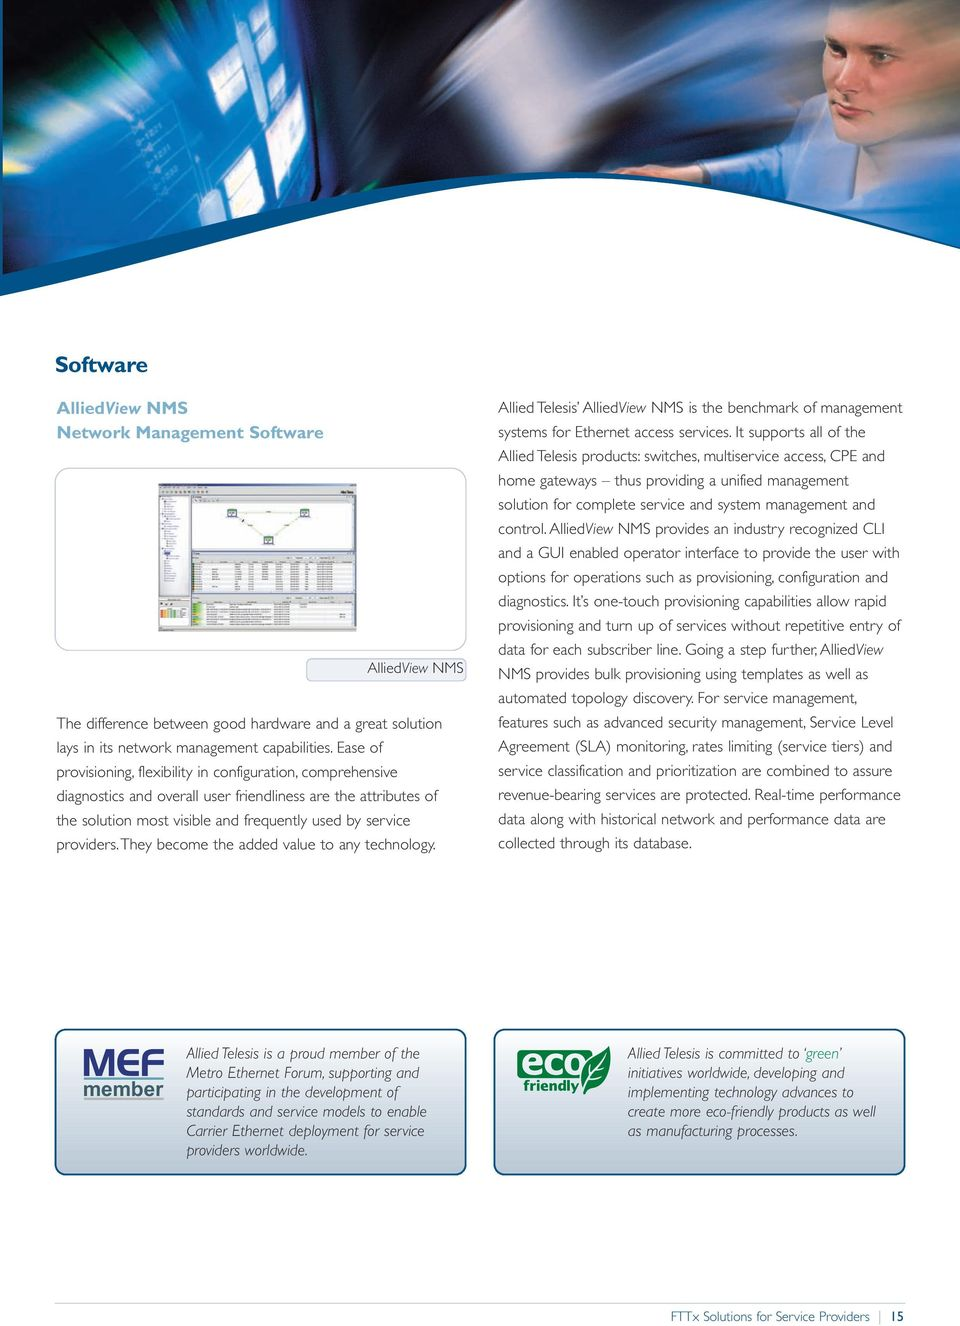 service providers. They become the added value to any technology. Allied Telesis AlliedView NMS is the benchmark of management systems for Ethernet access services.